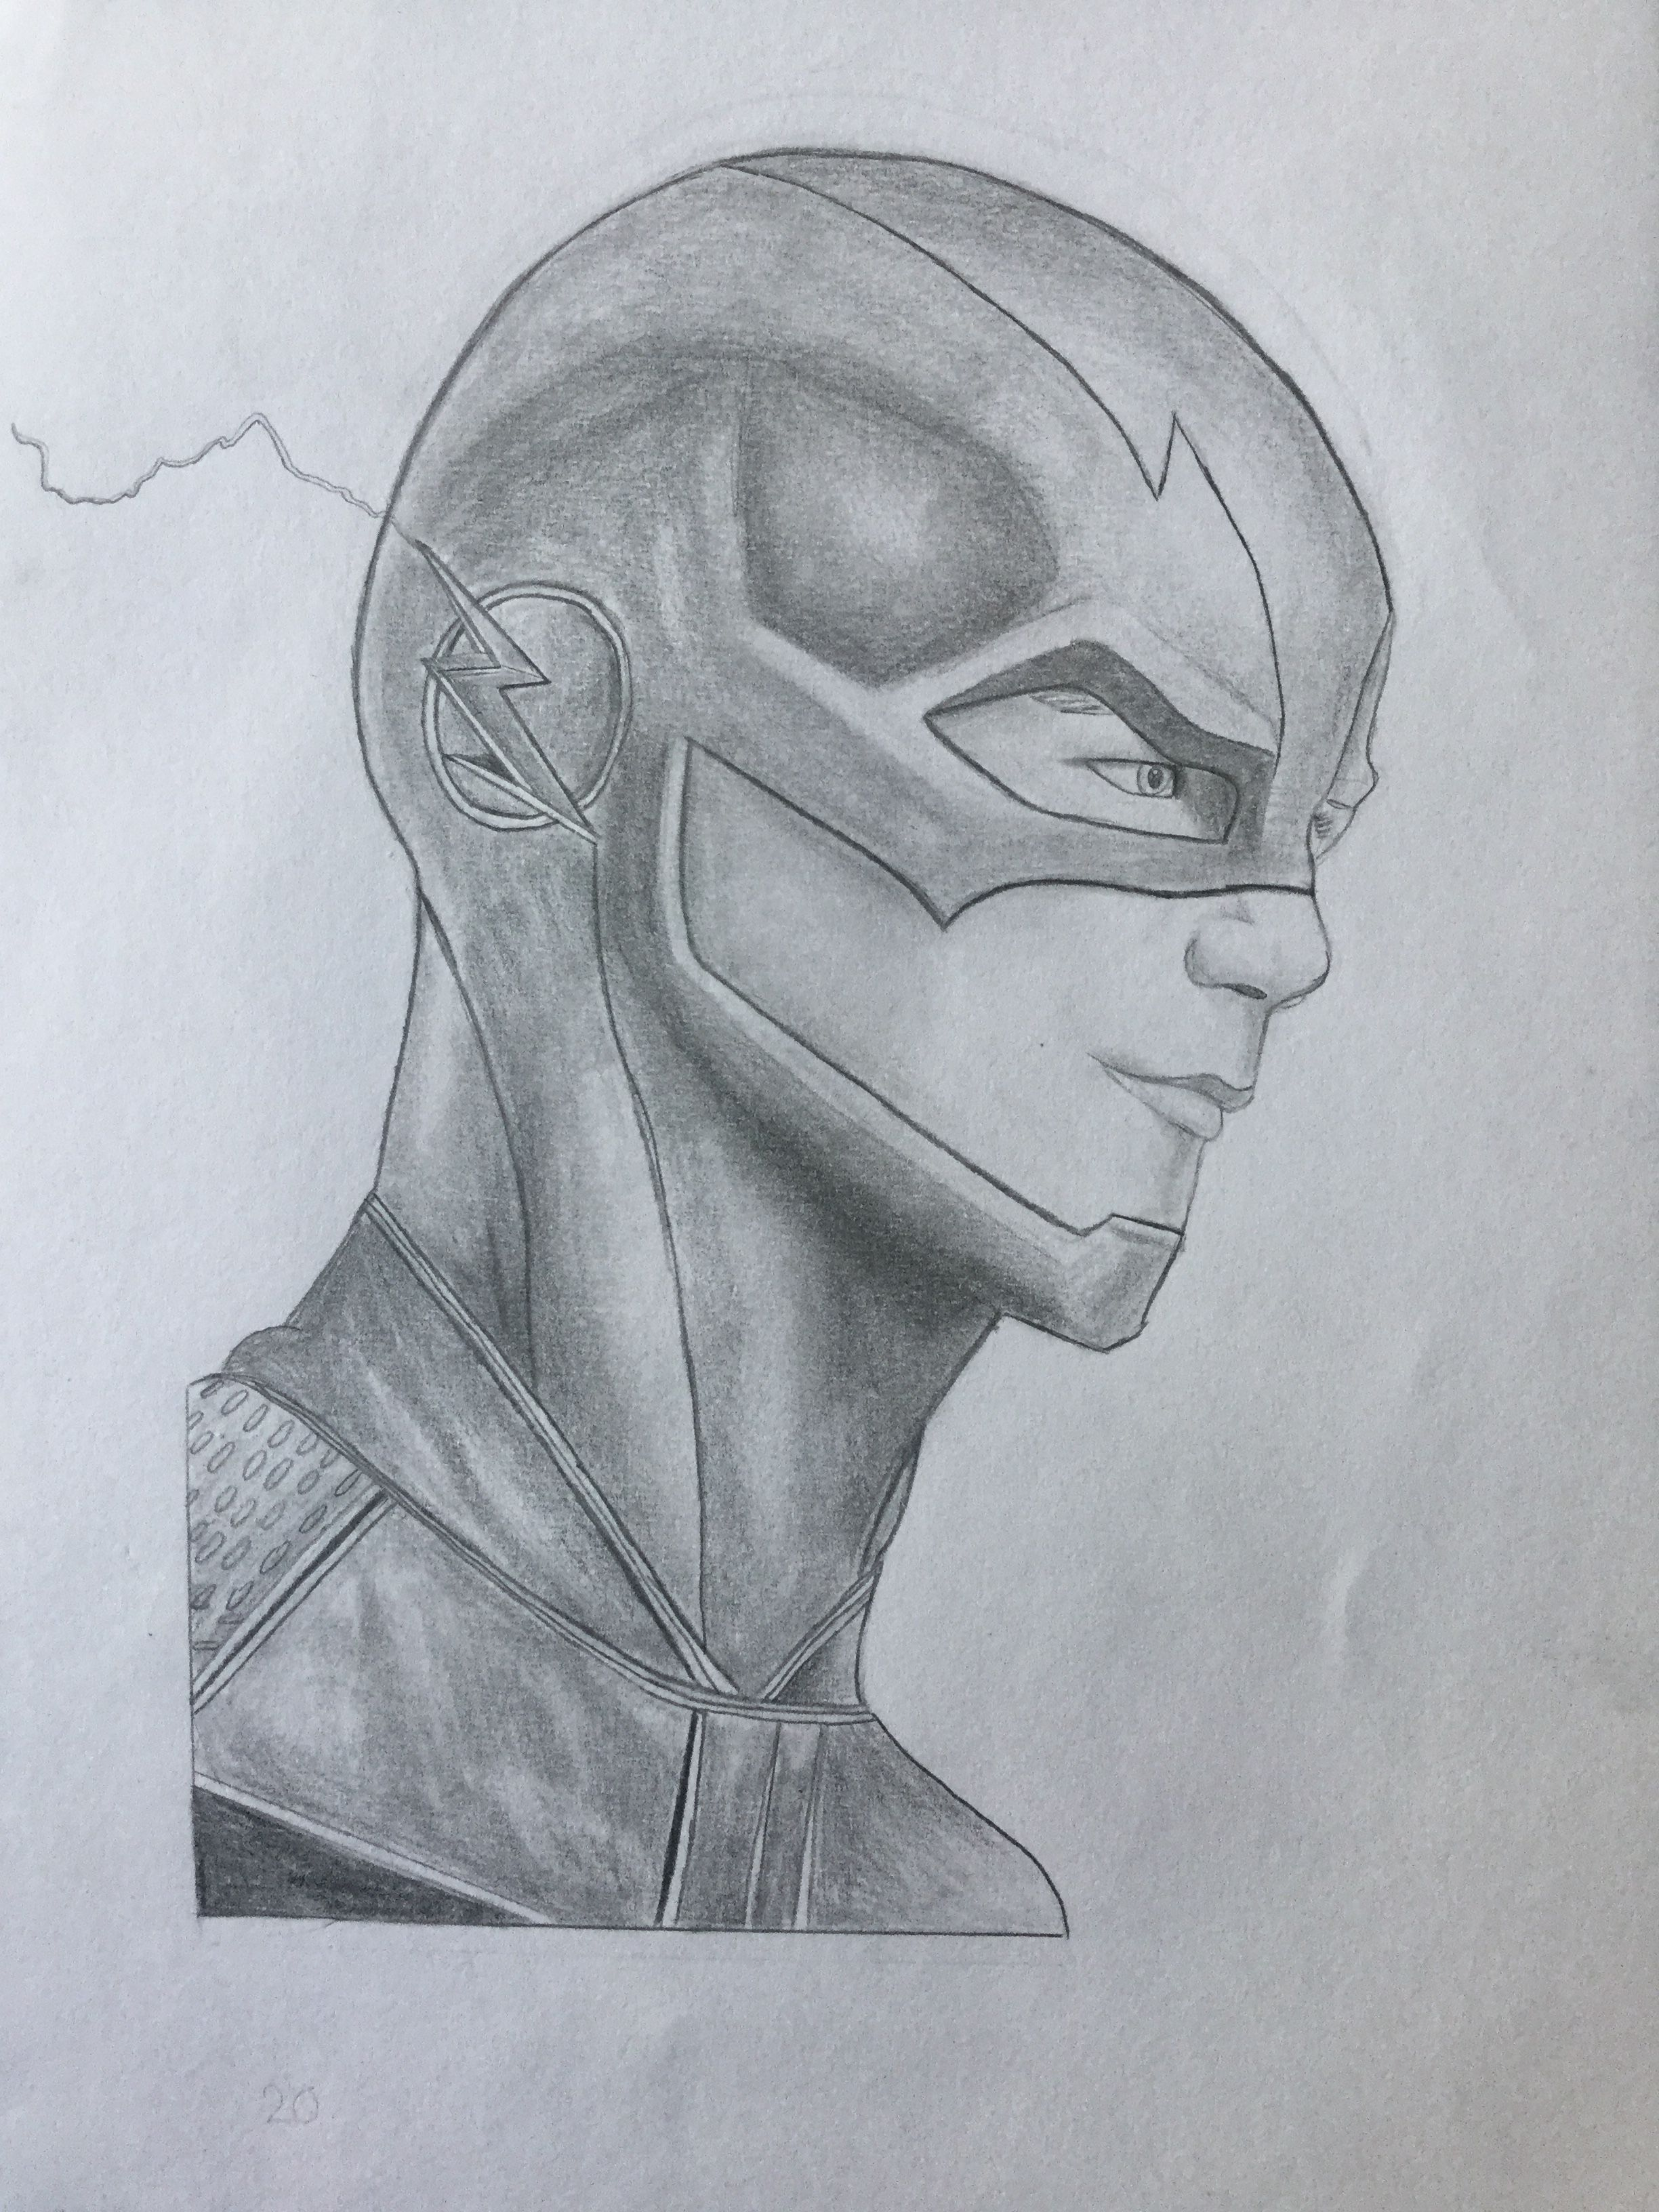 The Flash Line Art : The flash barry allen realistic drawings